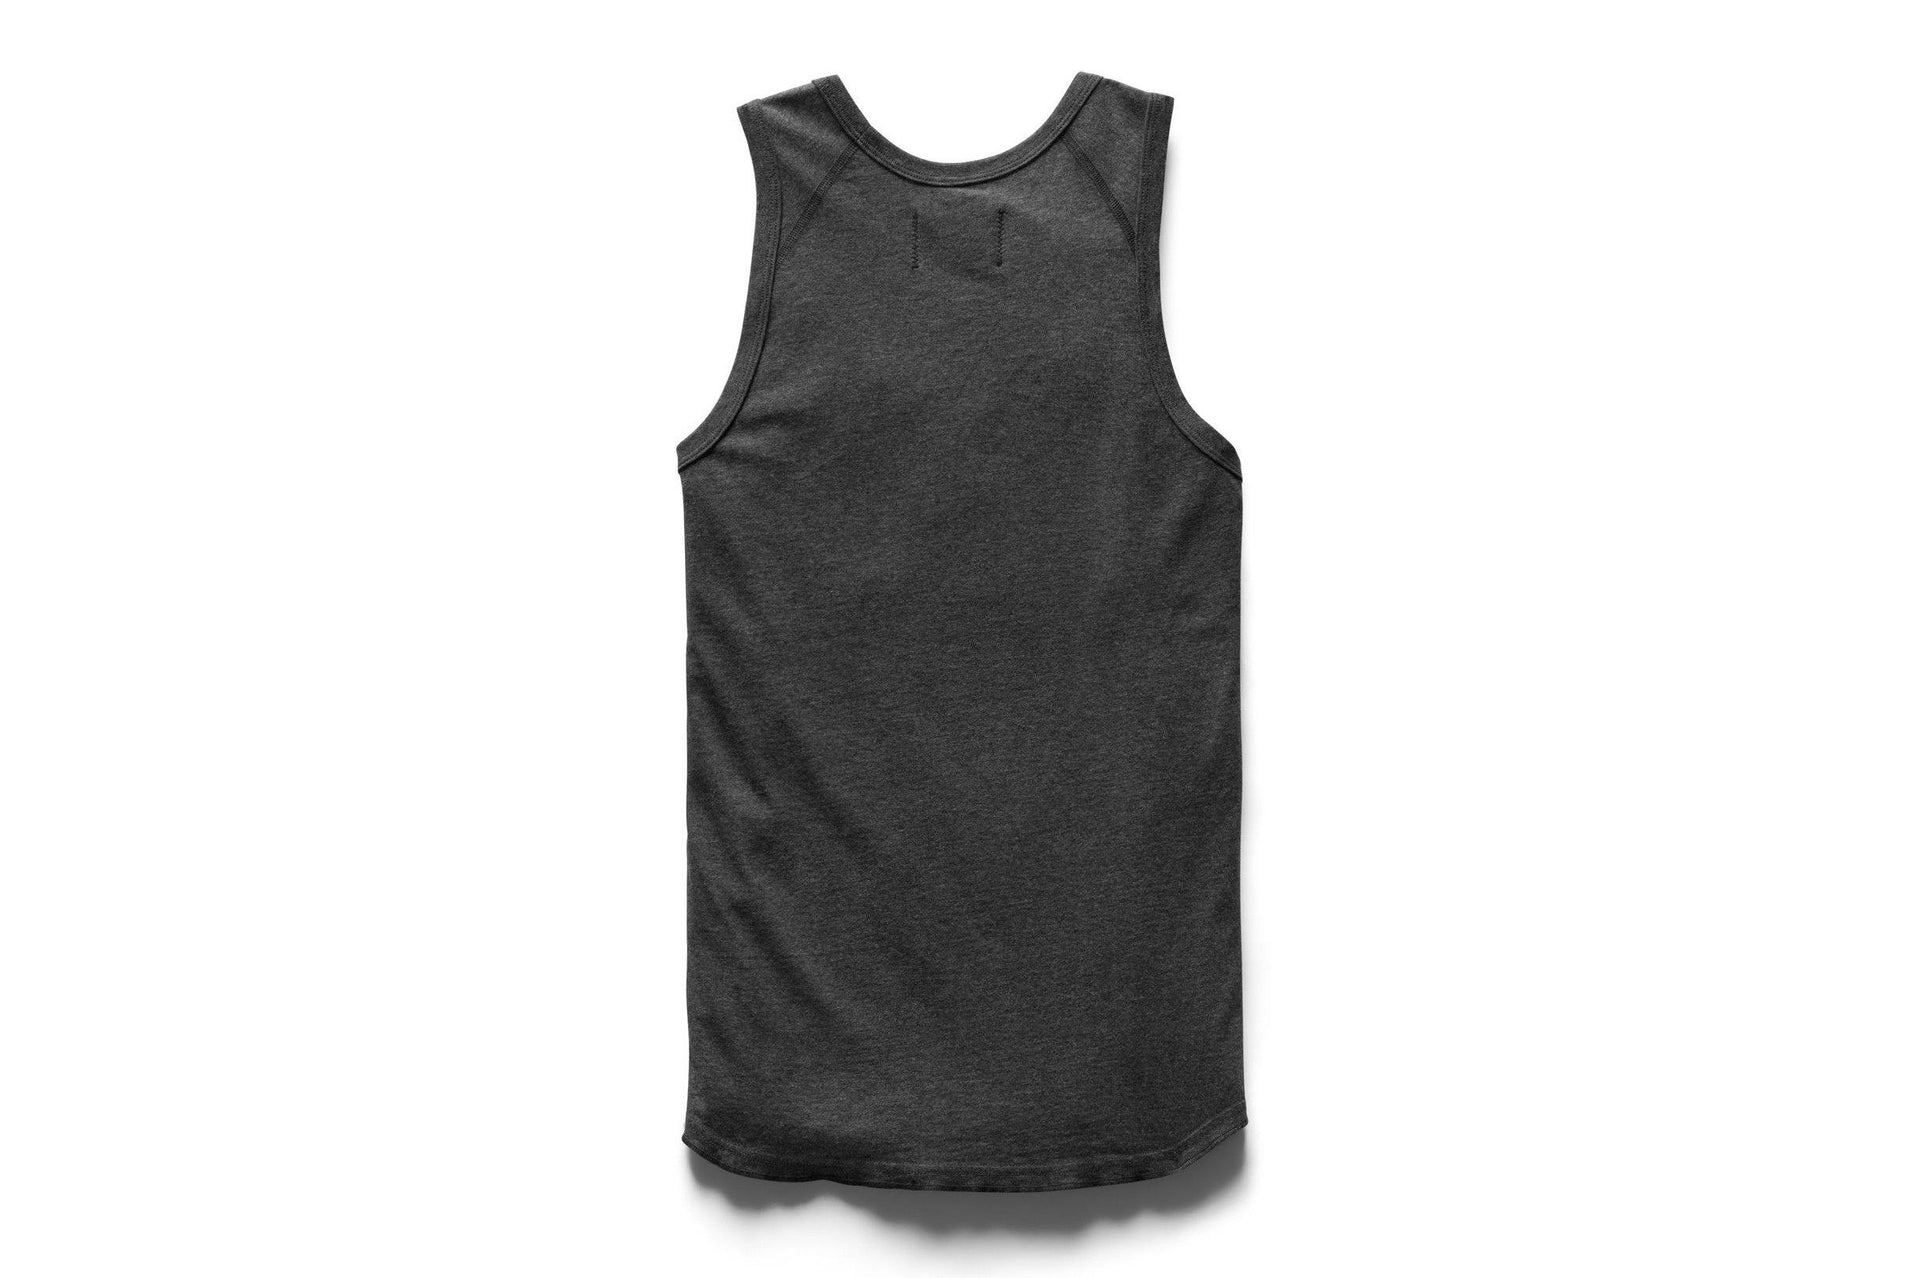 KNIT RINGSPUN JERSEY TANK TOP RC-1072 MENS SOFTGOODS REIGNING CHAMP